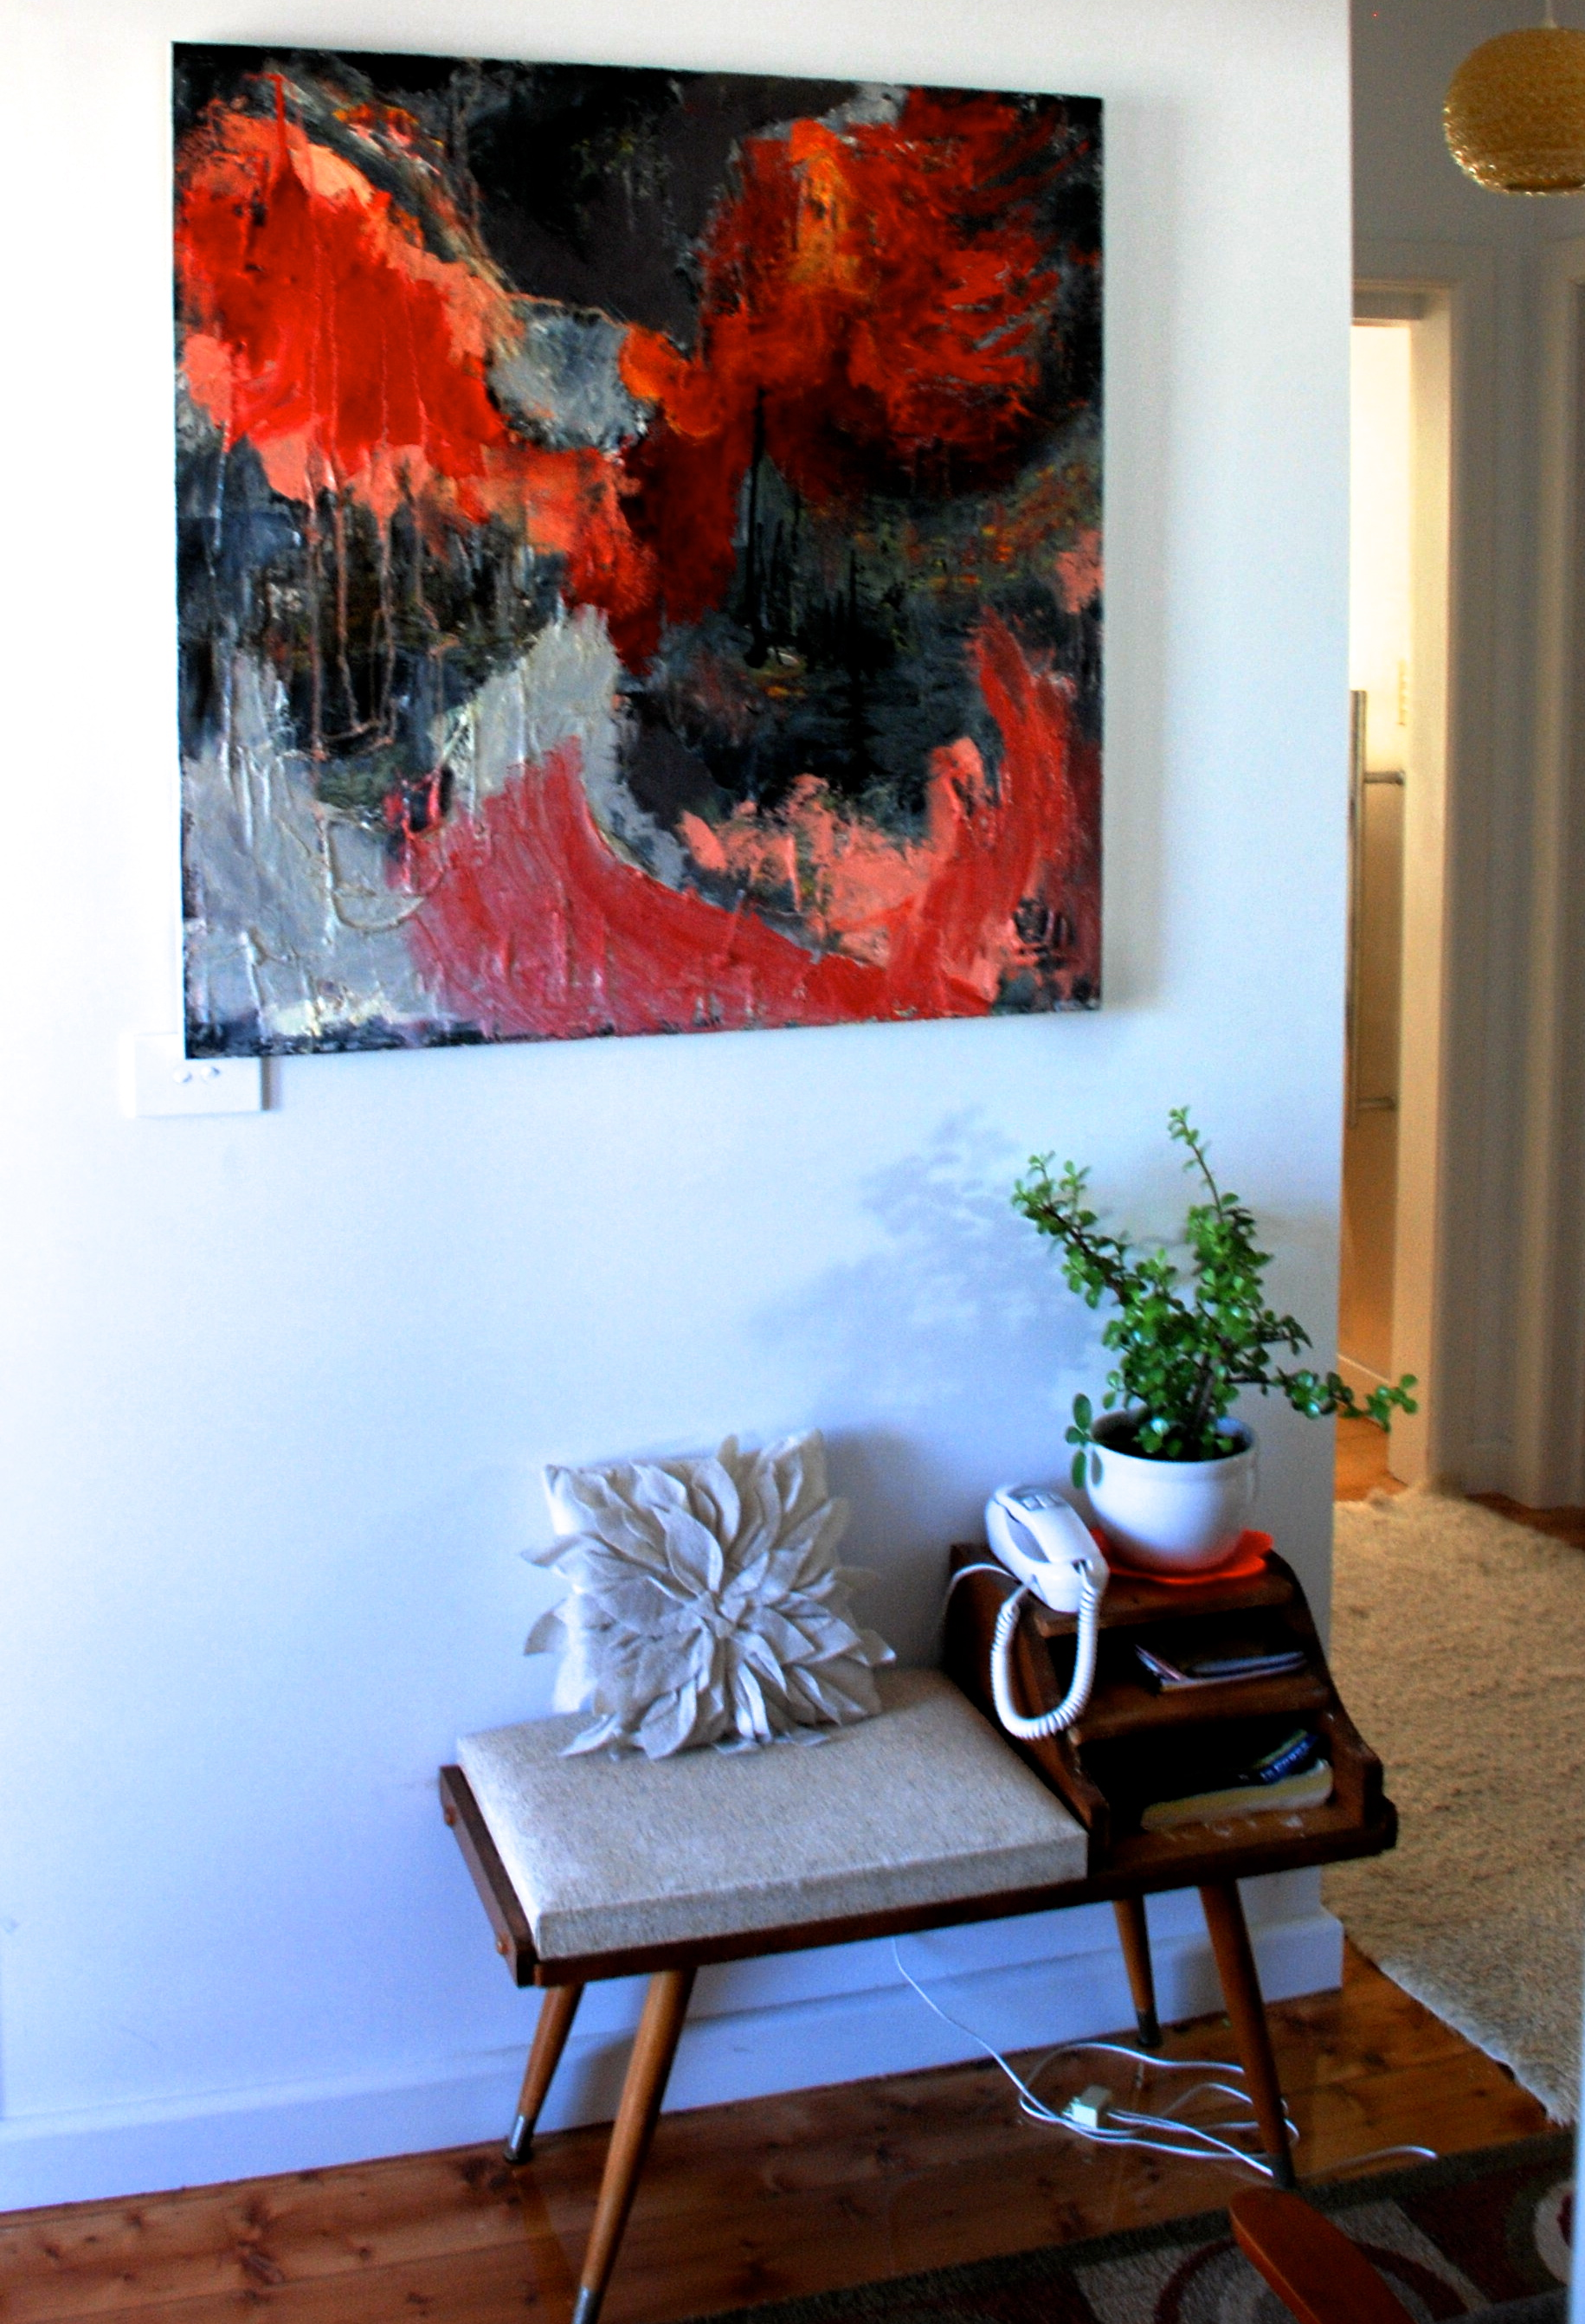 Inside the Home of Artist Carolyn O'neill